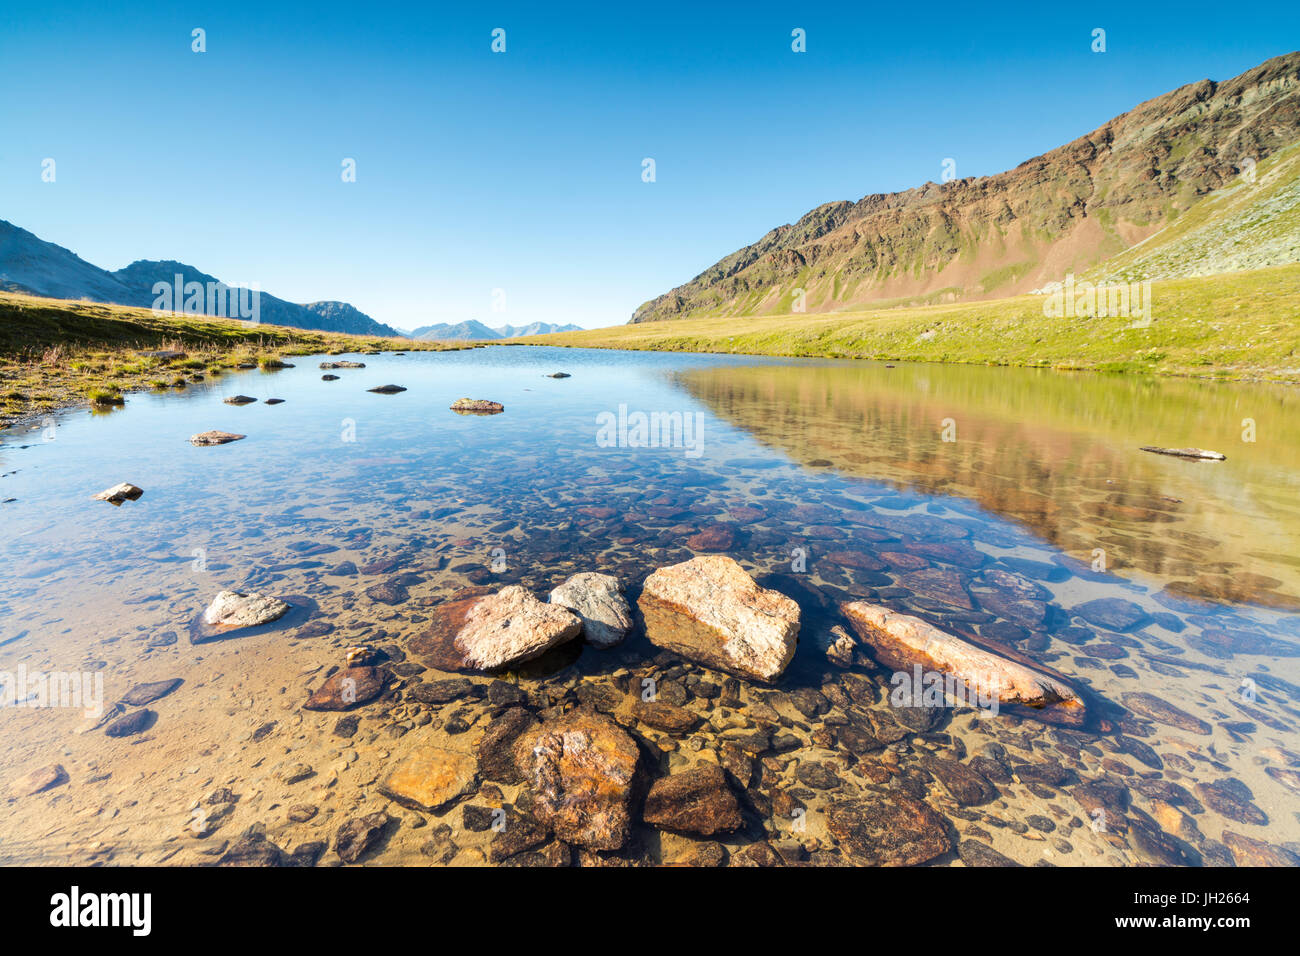 Sun shines on the rocky peaks reflected in the clear water of Lake Umbrail, Stelvio Pass, Valtellina, Lombardy, - Stock Image